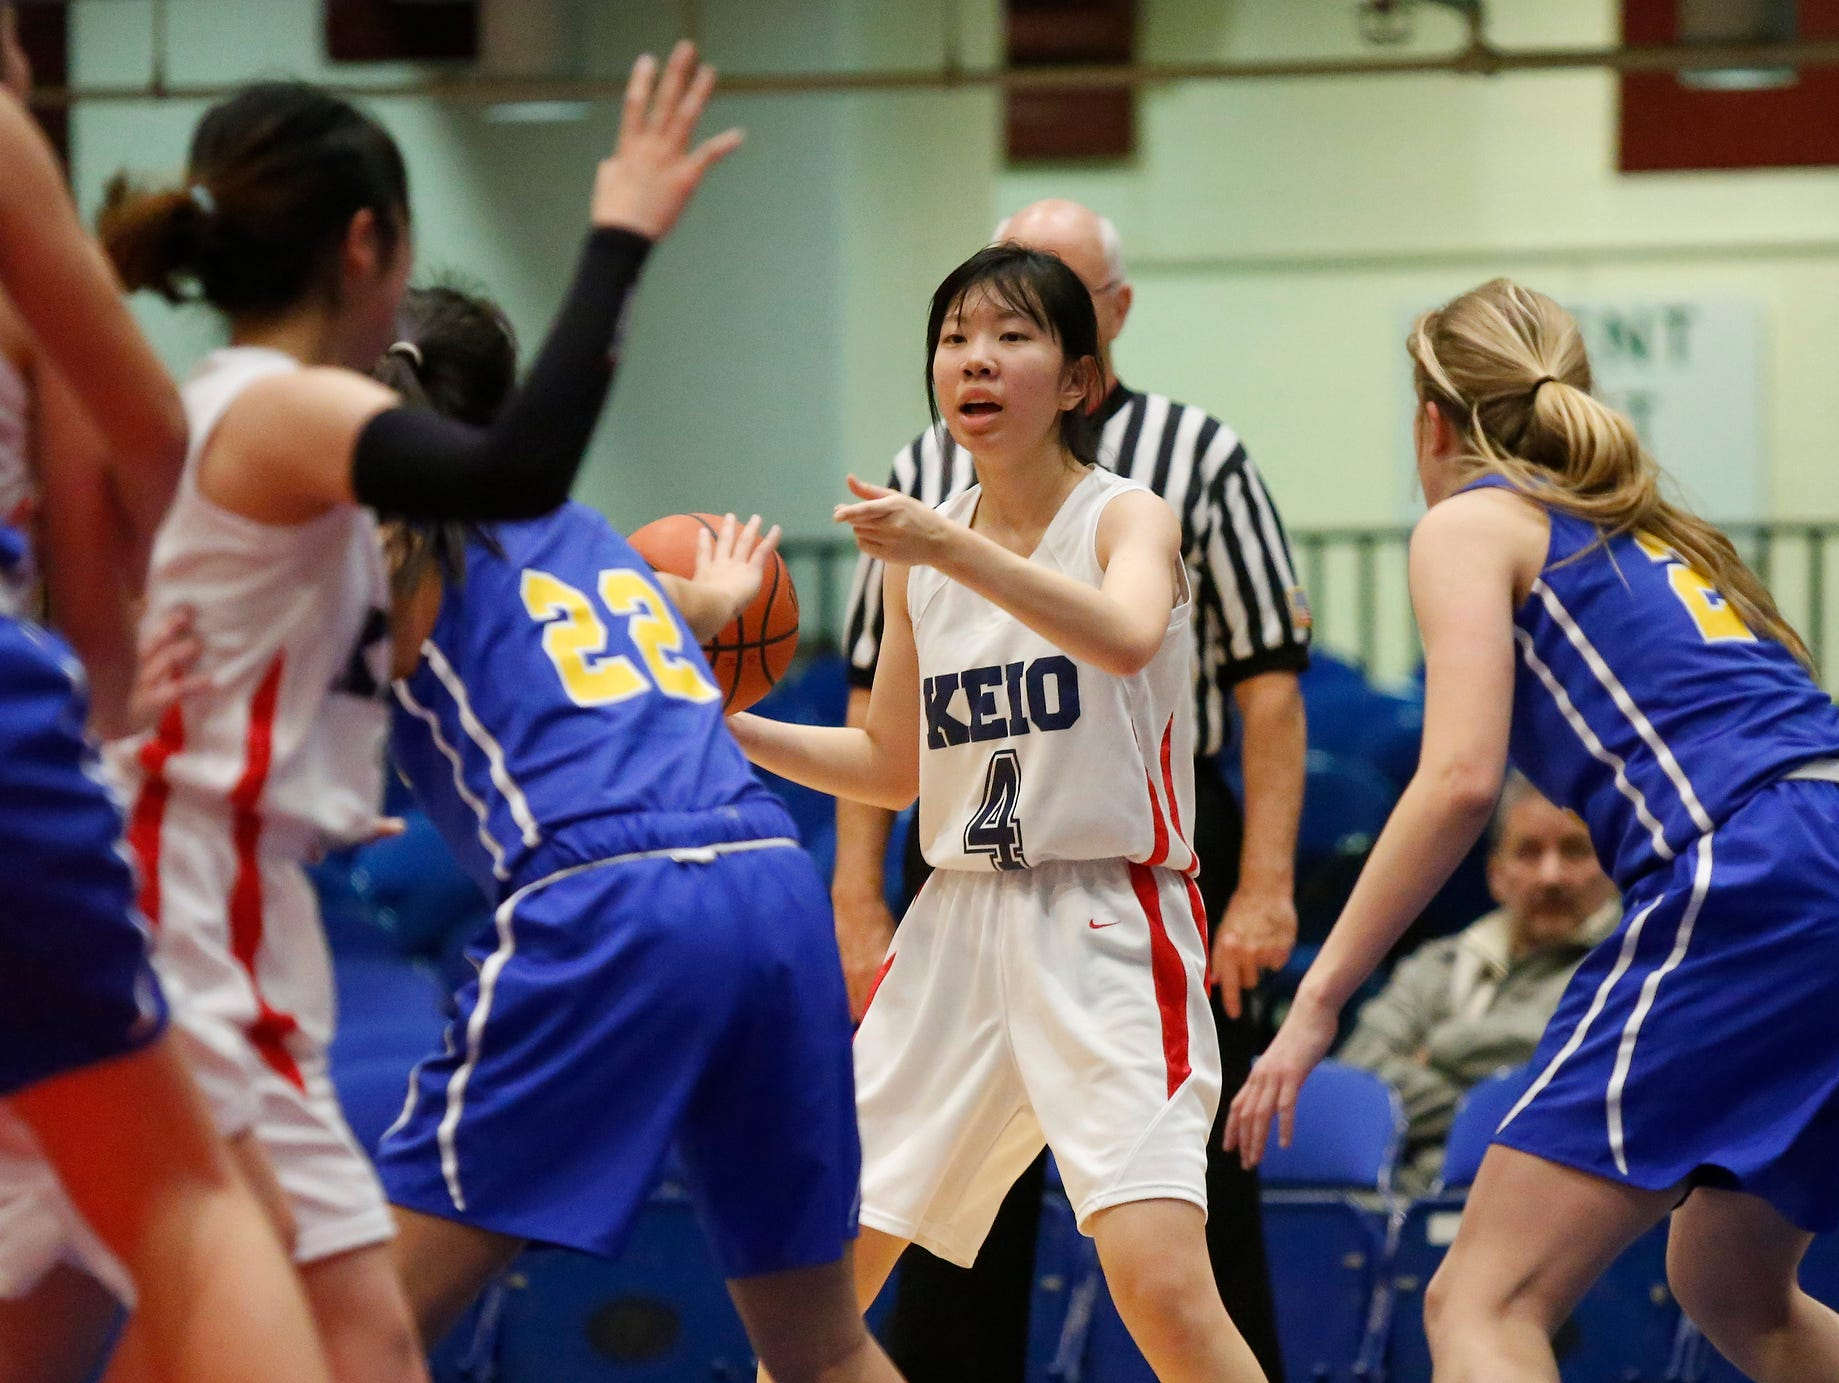 Keio's Marina Kofukugawa (4) calls a play against North Salem in the class C semi-final basketball game at the Westchester County Center in White Plains on Saturday, February 27, 2016.